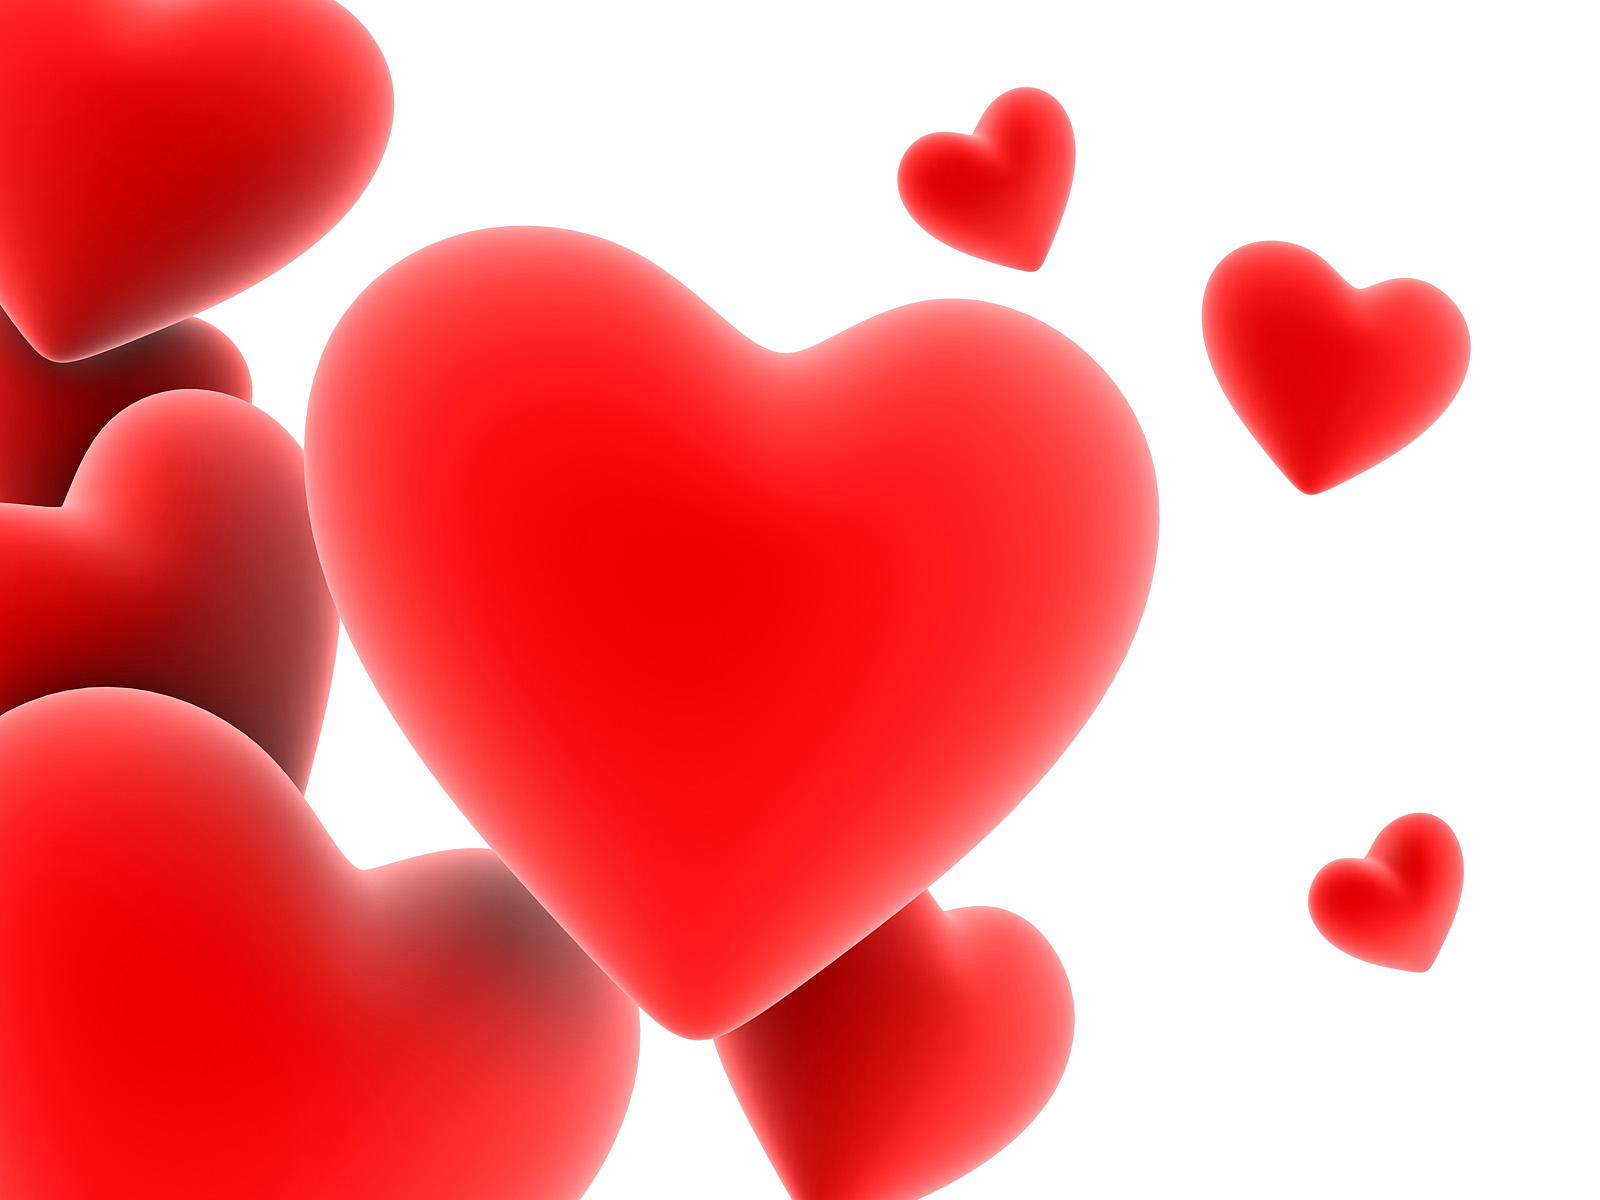 Red Heart Love Wallpaper: 1269850209 1600x1200 Floating-red-heart-wallpaper